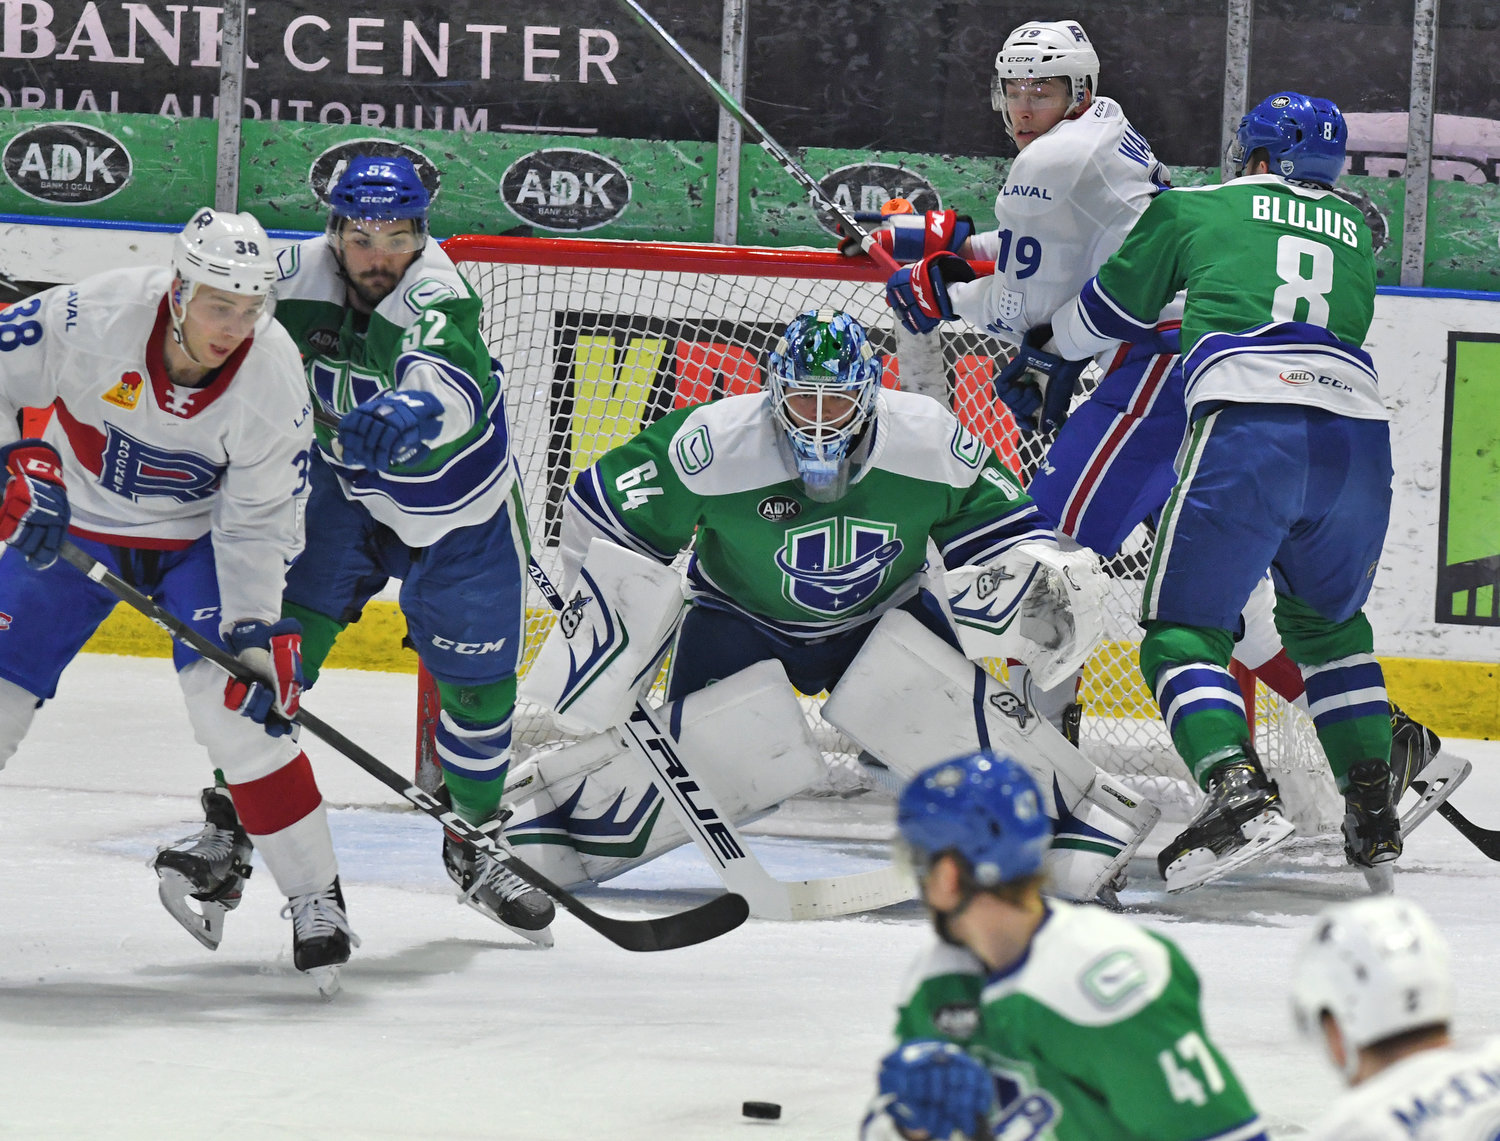 INCOMING — Comets goalie Michael DiPietro watches the puck as Laval players crash the net. Utica defensemen Mitch Eliot, left, and Dylan Blujus help keep the path clear. DiPietro stopped 28 shots and Utica won 3-2 at the Utica Aud Wednesday.